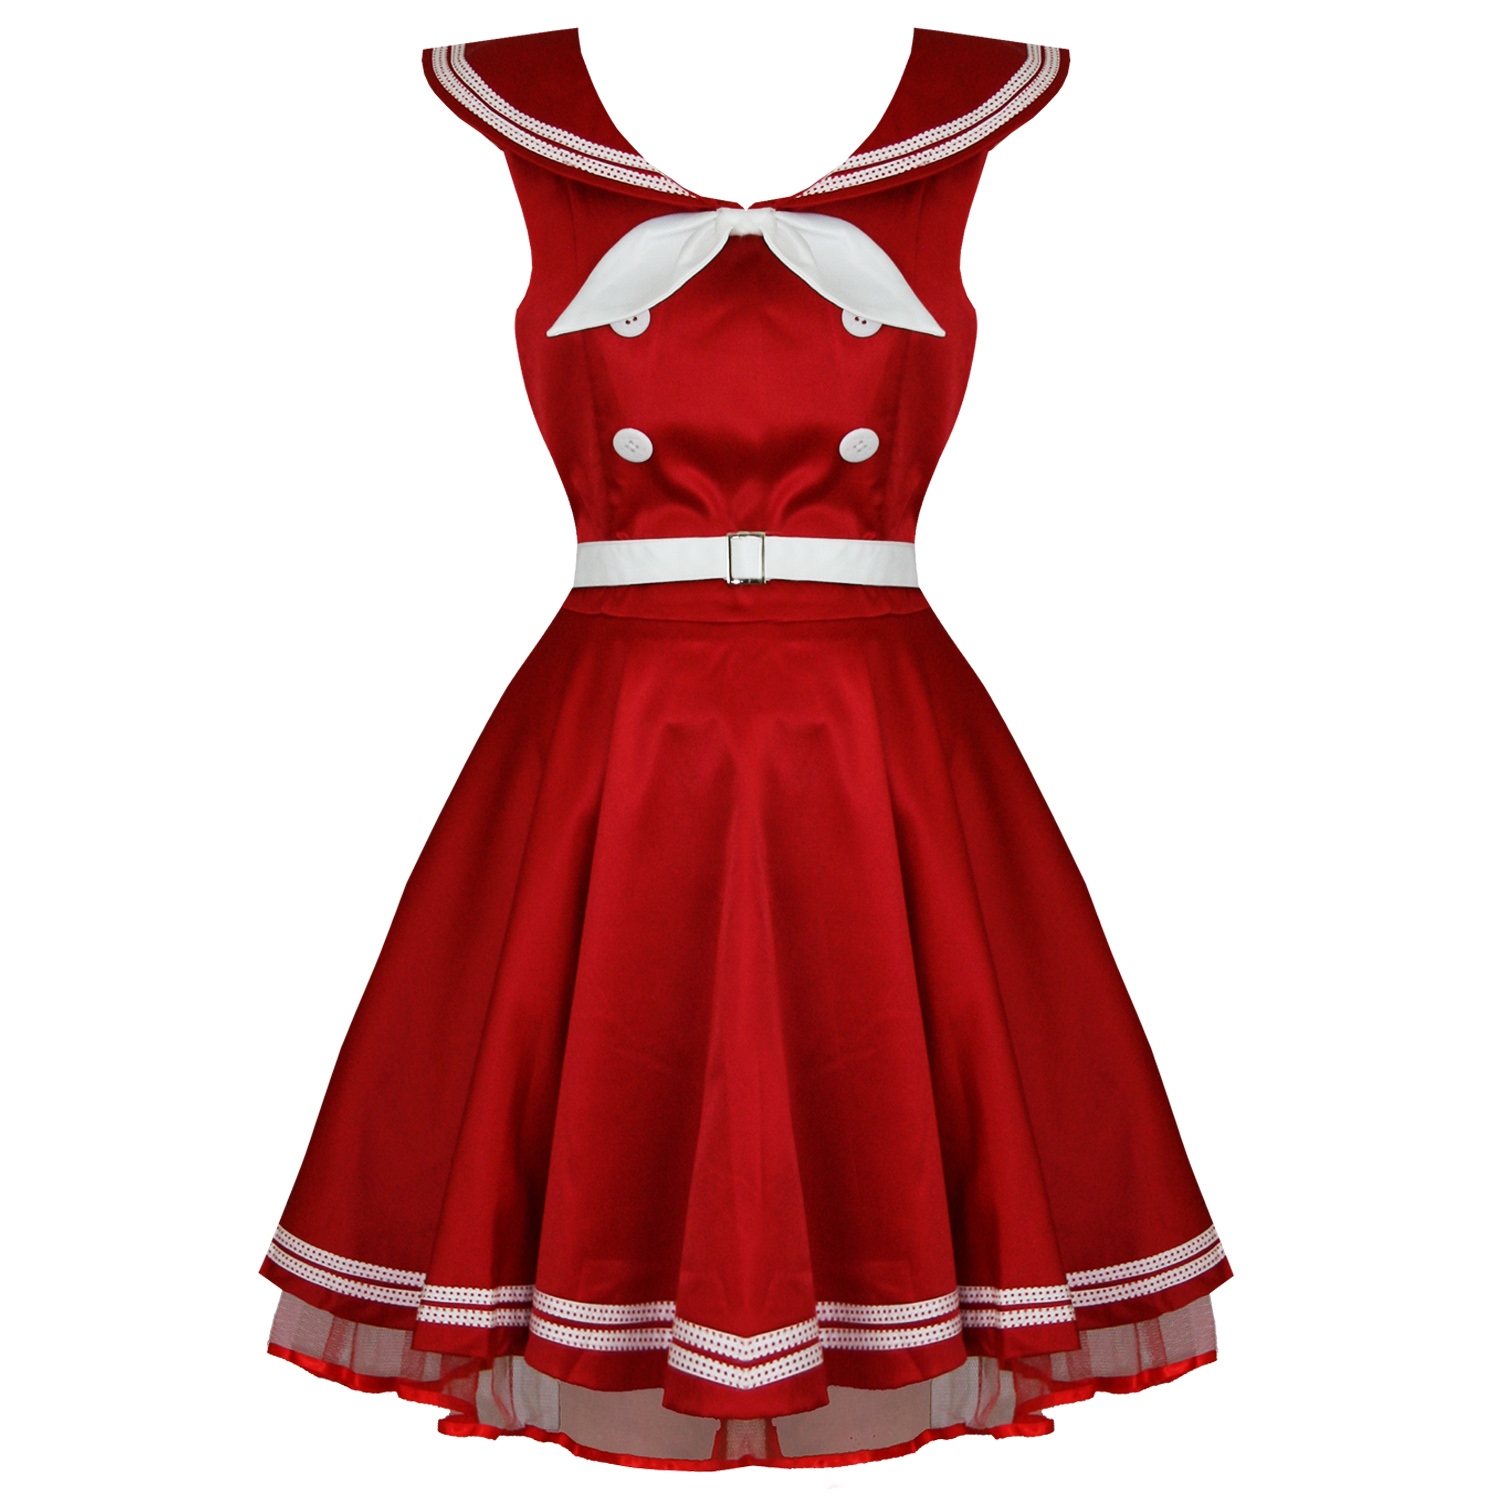 BANNED-NEW-LADIES-RED-SAILOR-ROCKABILLY-50S-RETRO-VINTAGE-PINUP-BOW-DRESS